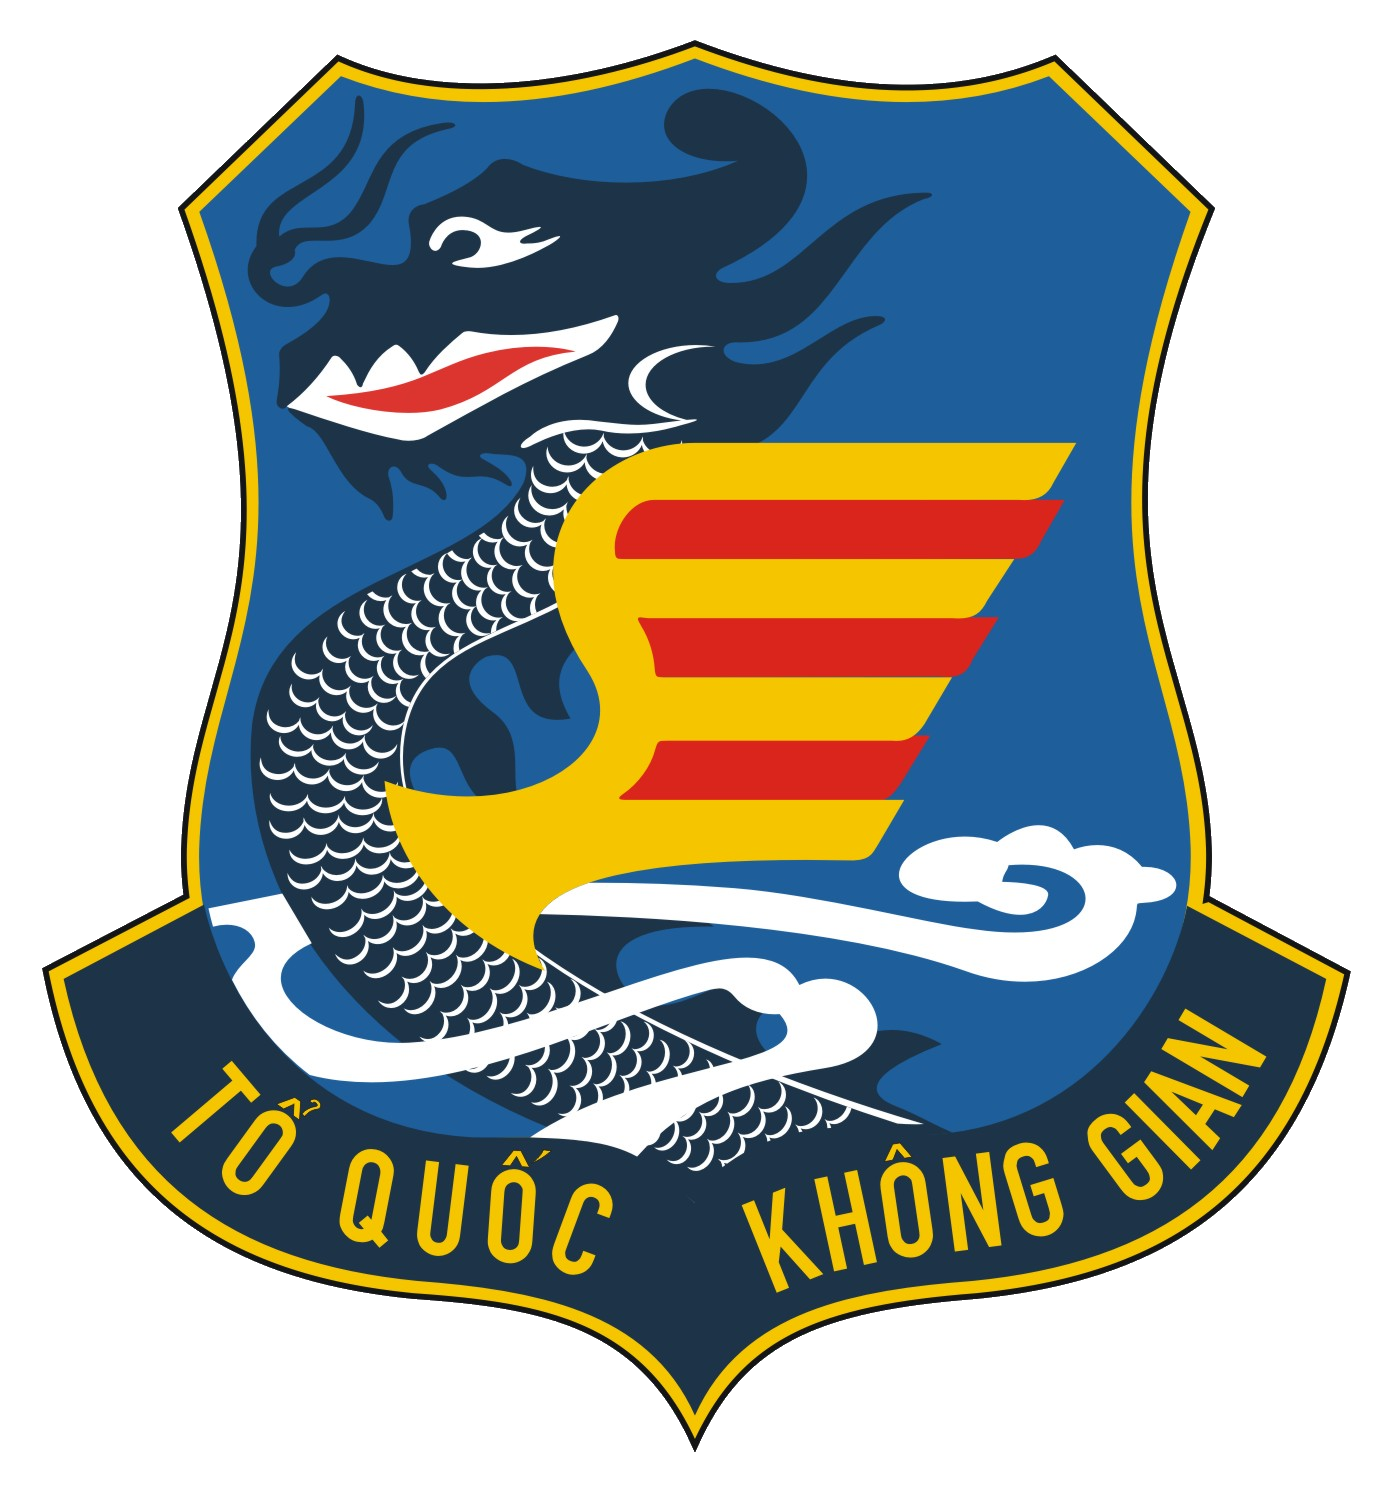 South Vietnam Air Force - Wikipedia